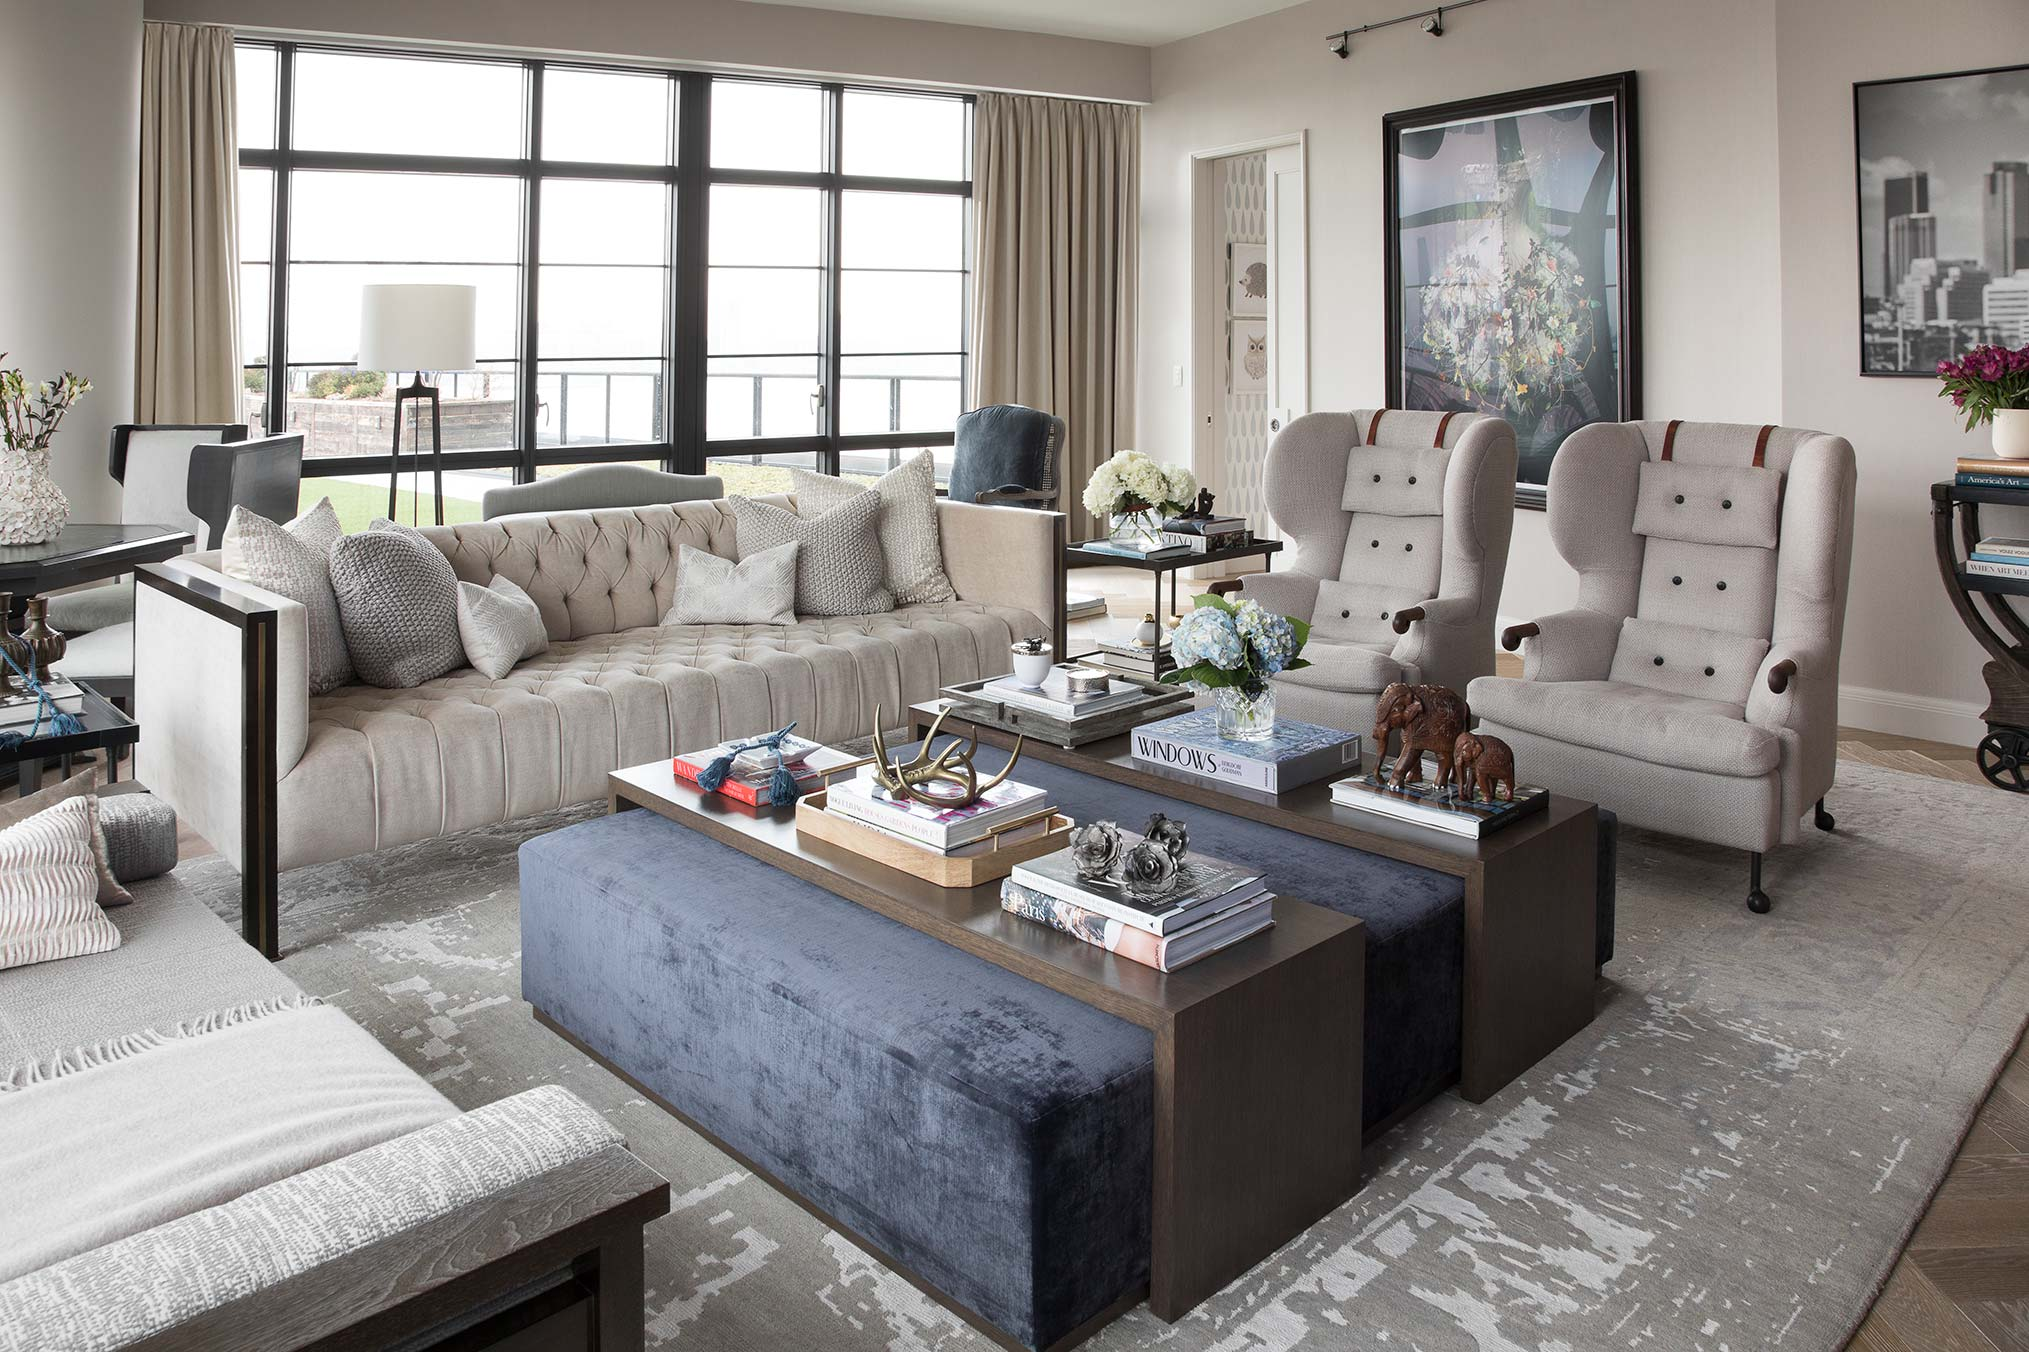 Interior Design Ideas Sunken Living Room